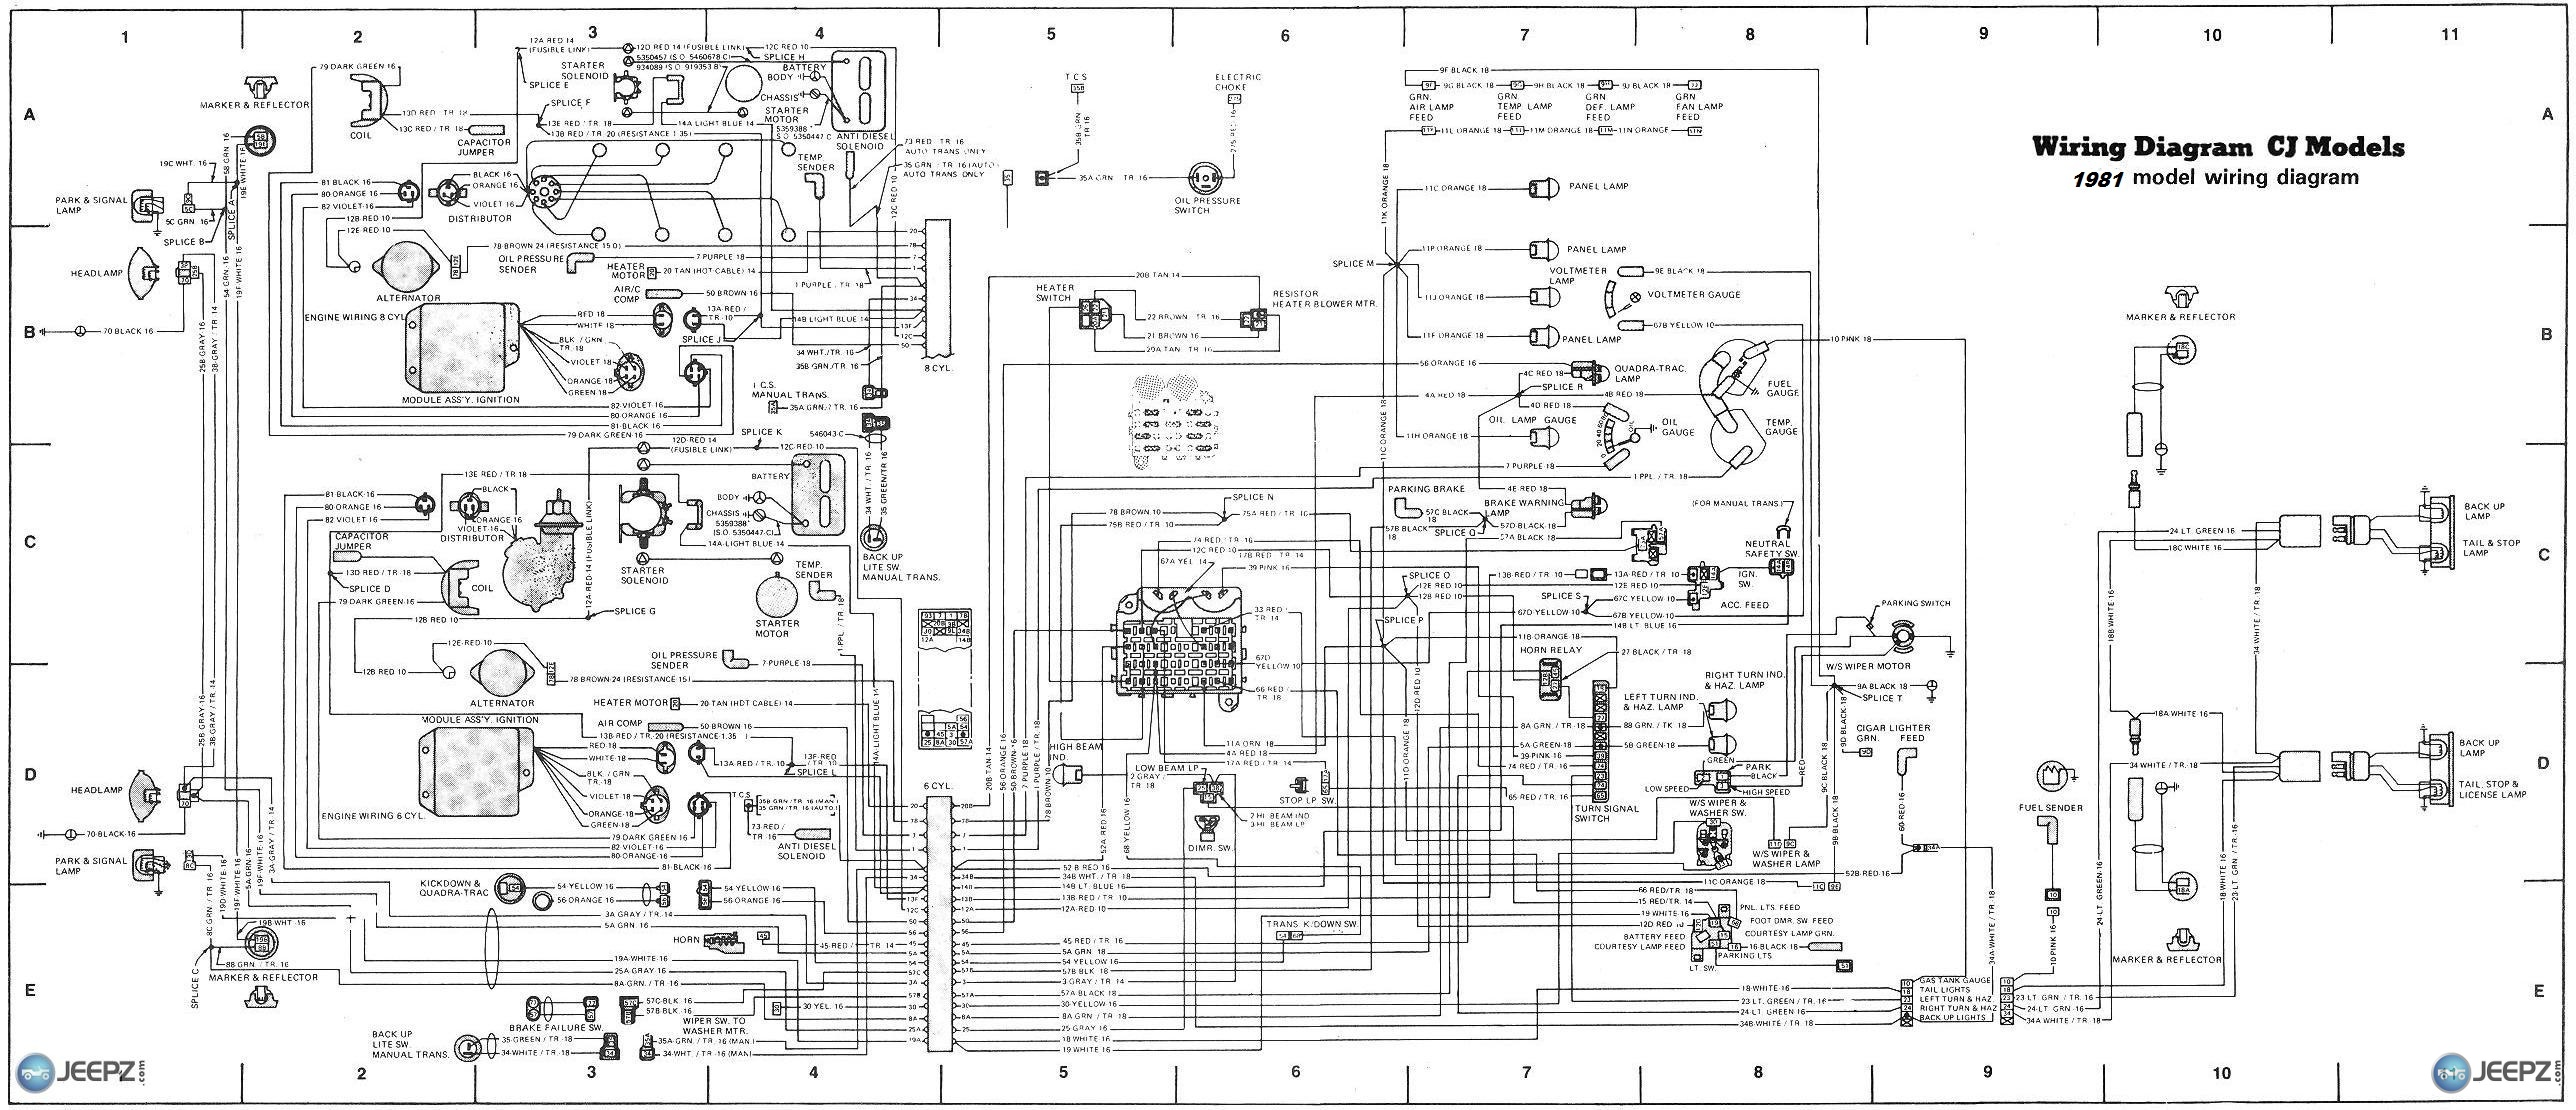 1980 Jeep Cj7 Wiring Diagram Auto Electrical Wiring Diagram 1972 Jeep CJ5  Wiring-Diagram 1985 Jeep Cj7 Wiring Diagram